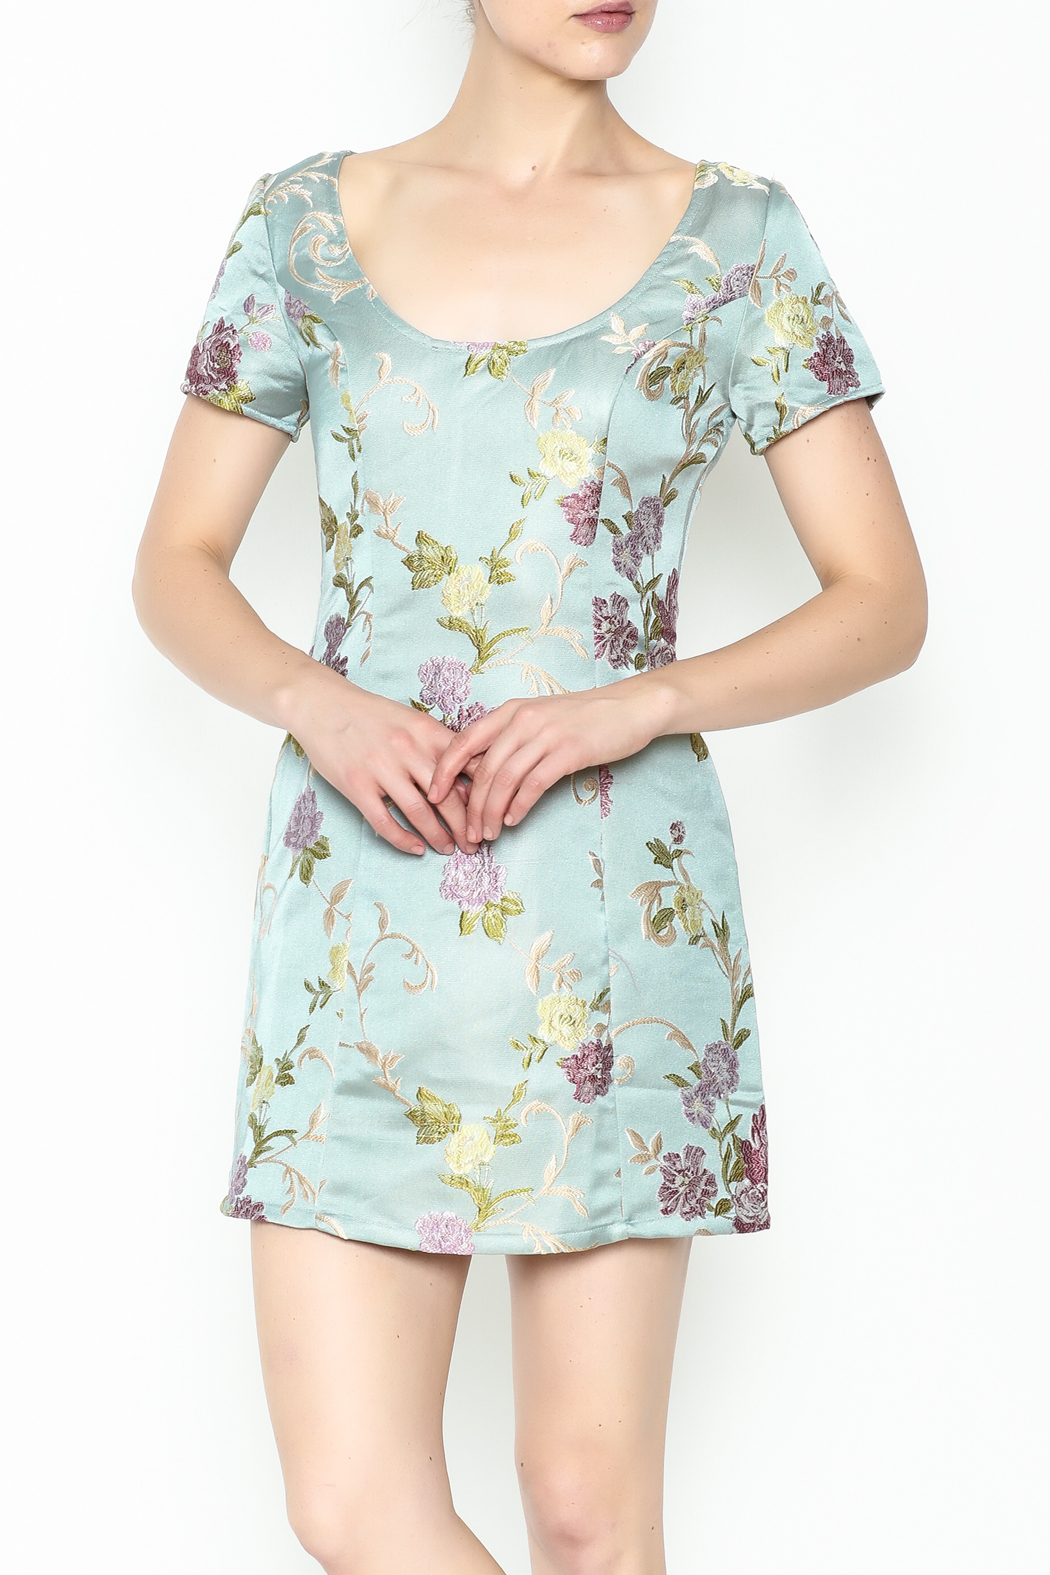 Honey Punch Floral Jacquard Dress - Main Image